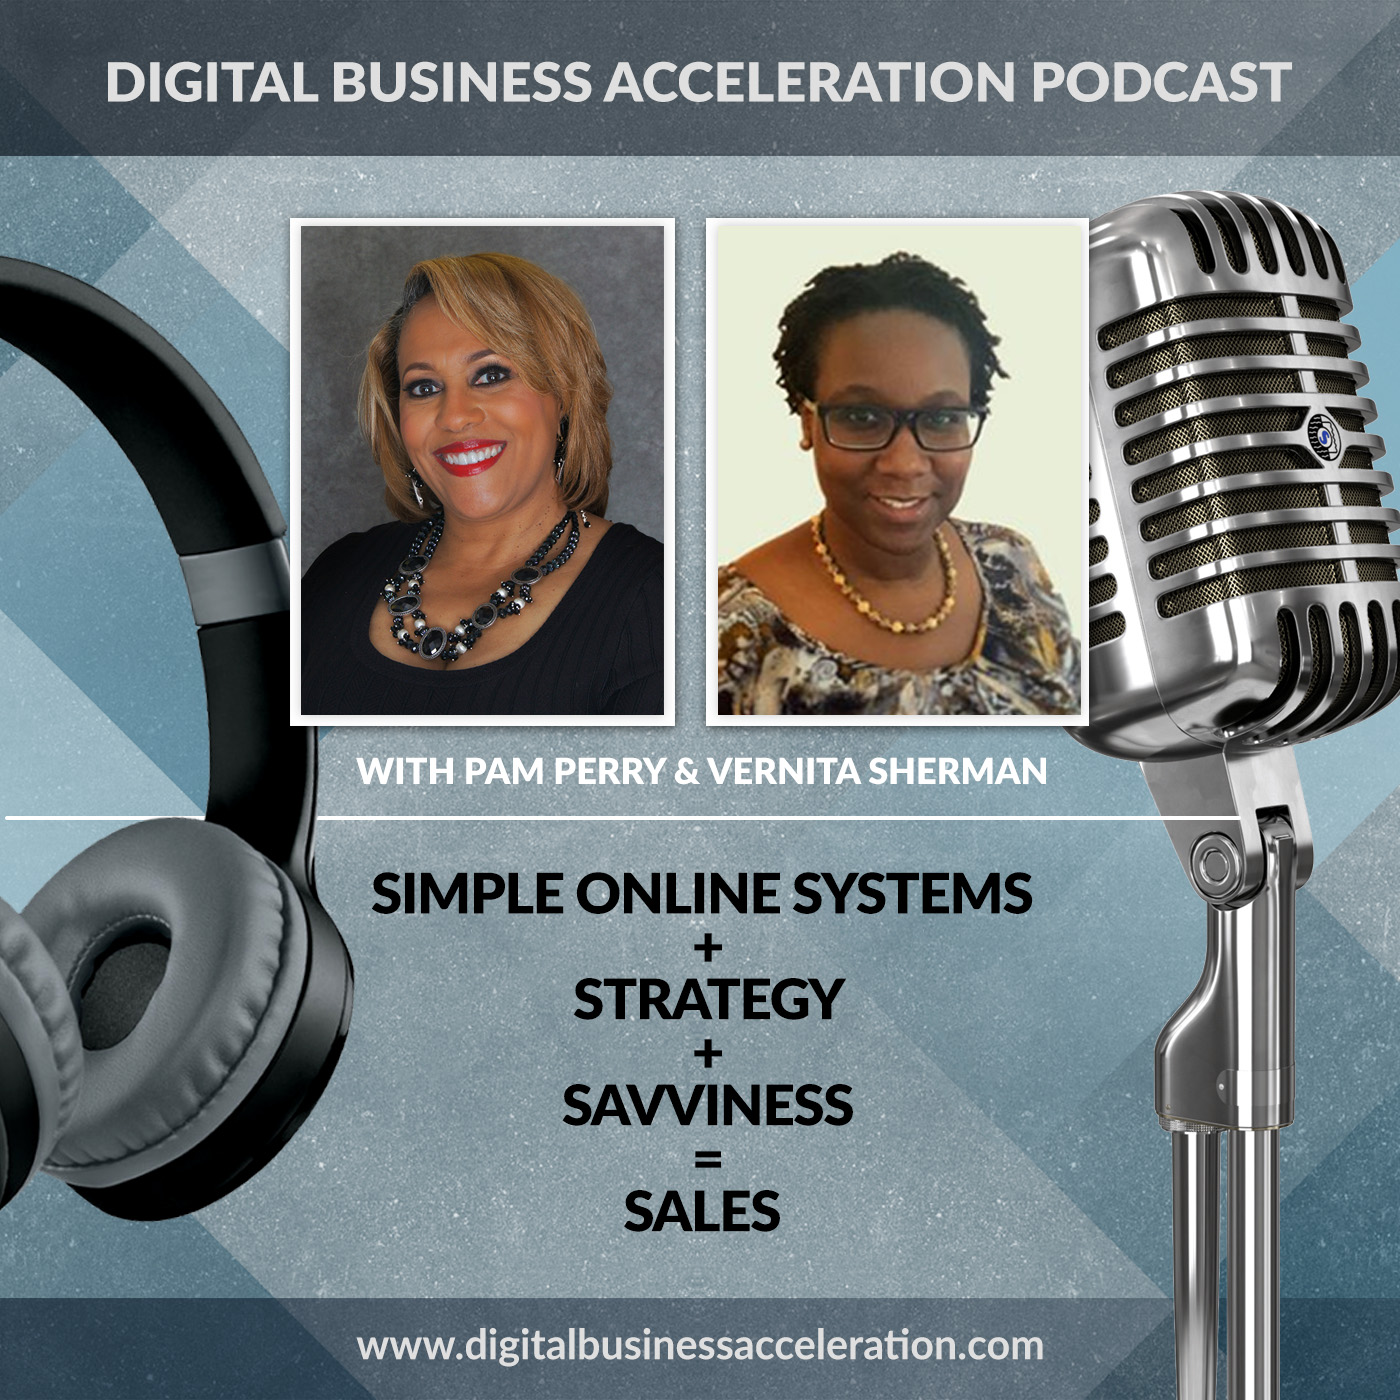 Digital Business Acceleration Podcast